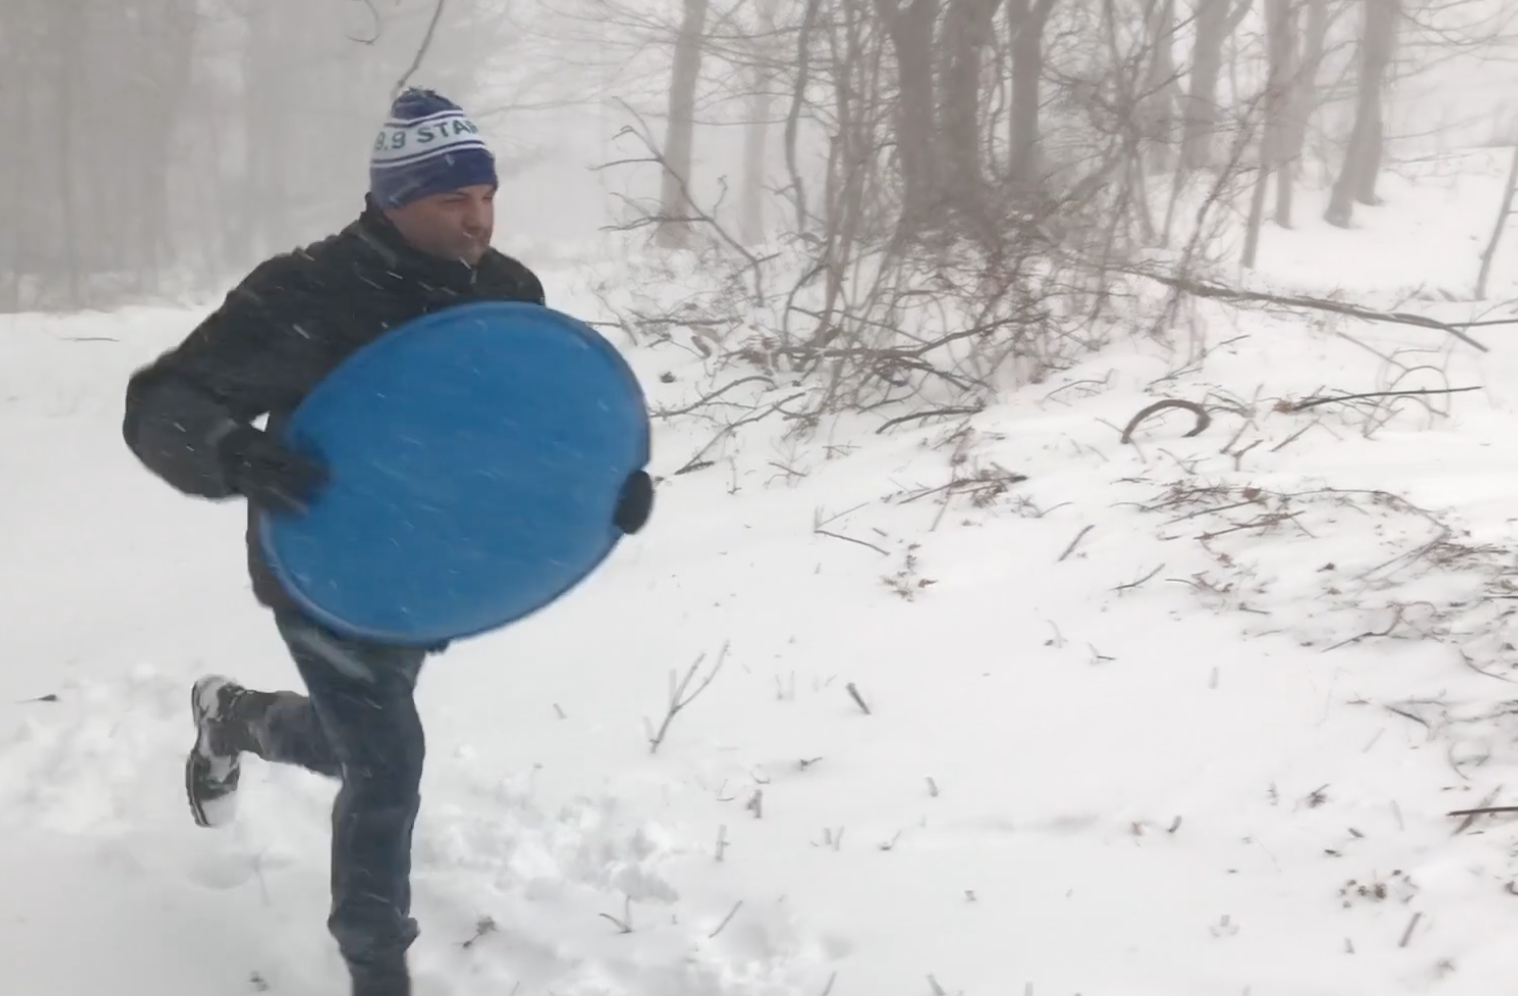 60 Seconds Behind the Scenes- Raven's sledding adventure